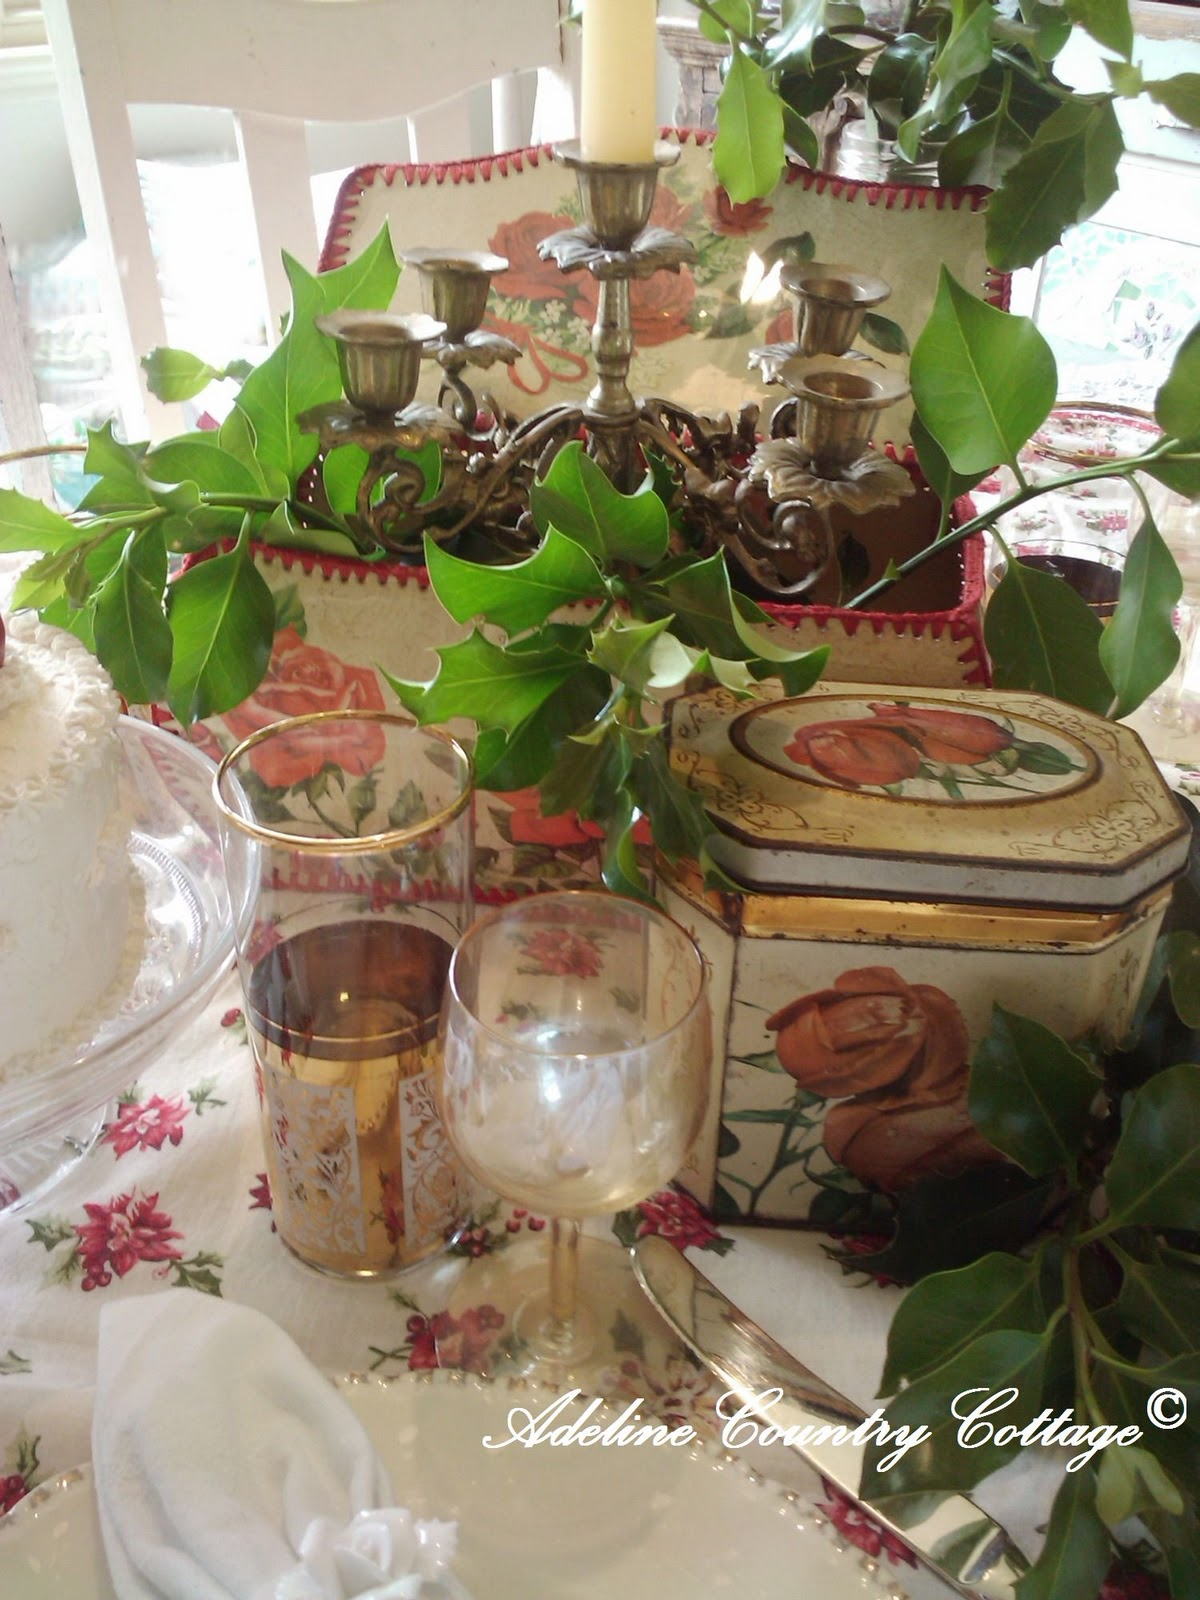 Adeline Country Cottage: Inspiring Christmas Table Setting ...